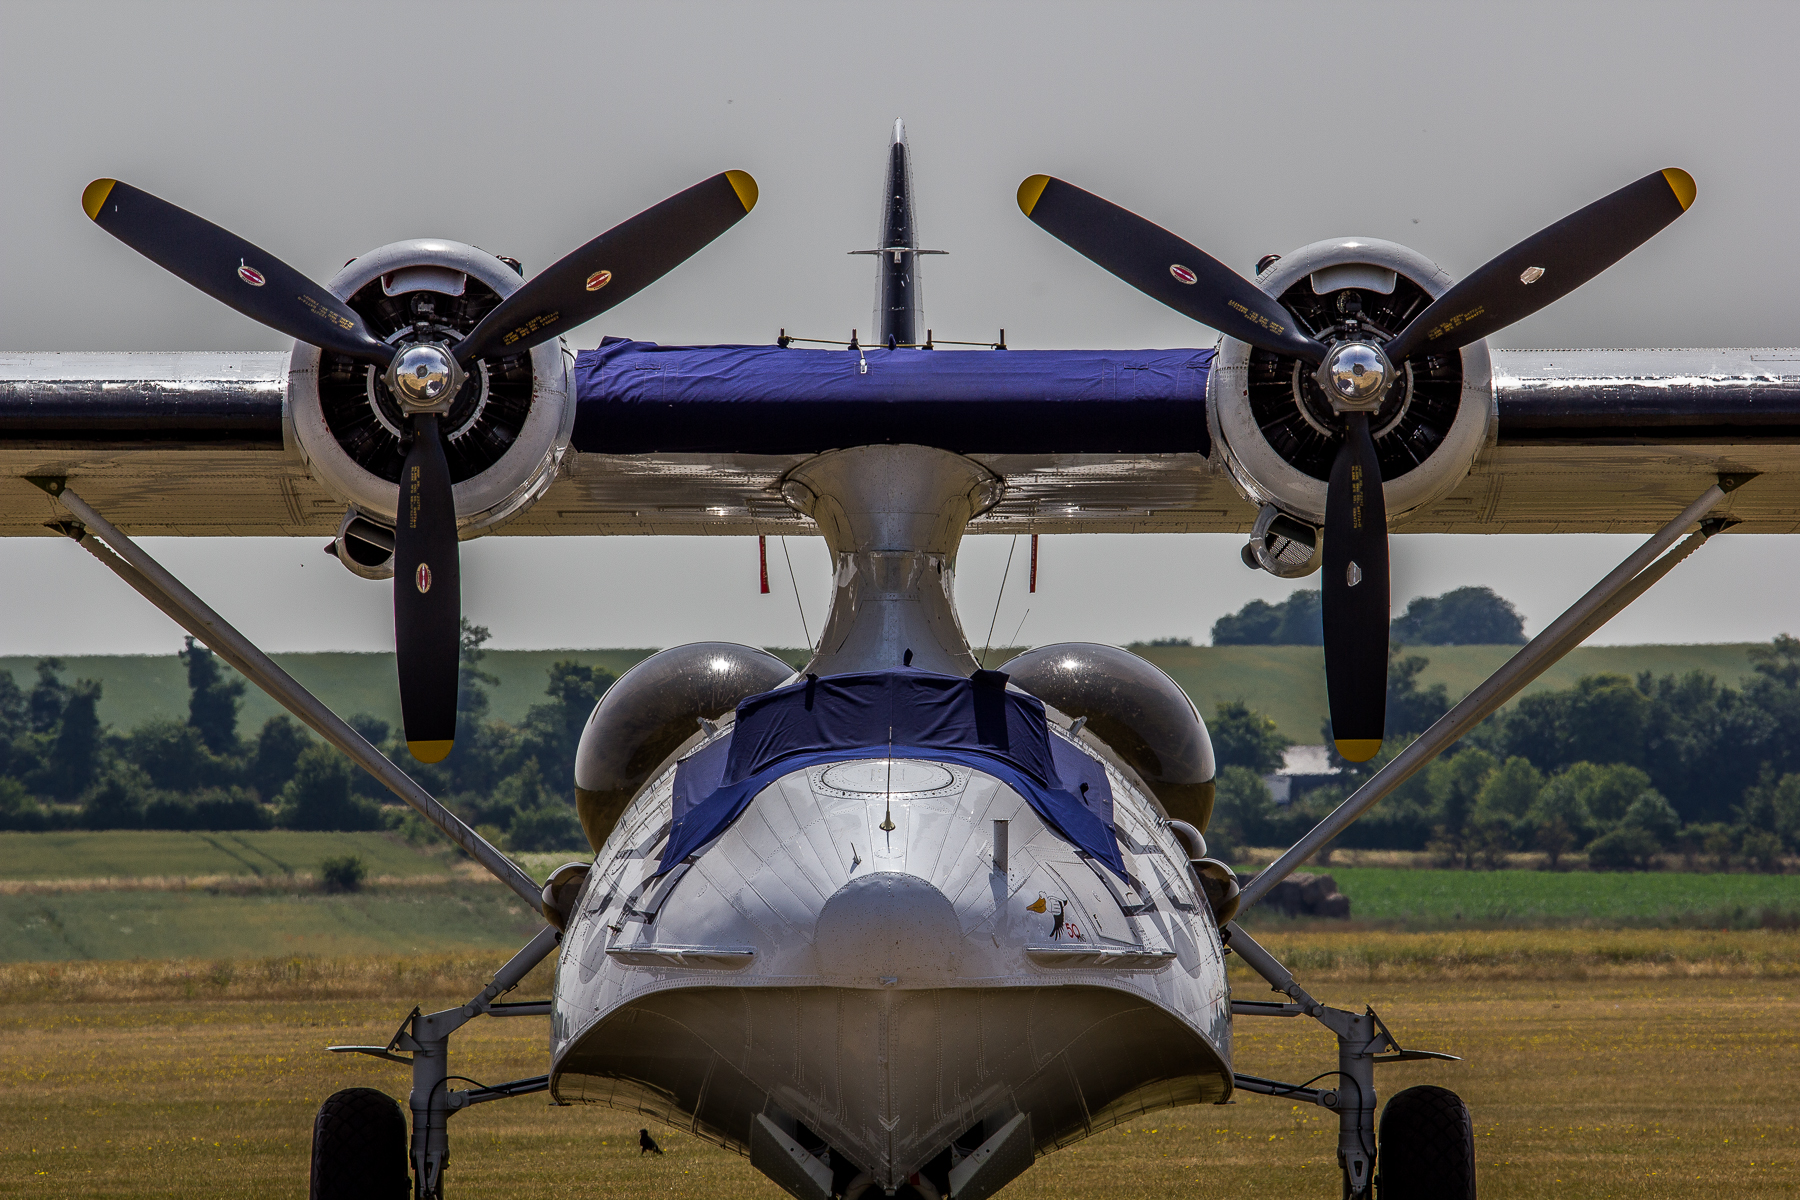 Catalina at Duxford Airfield